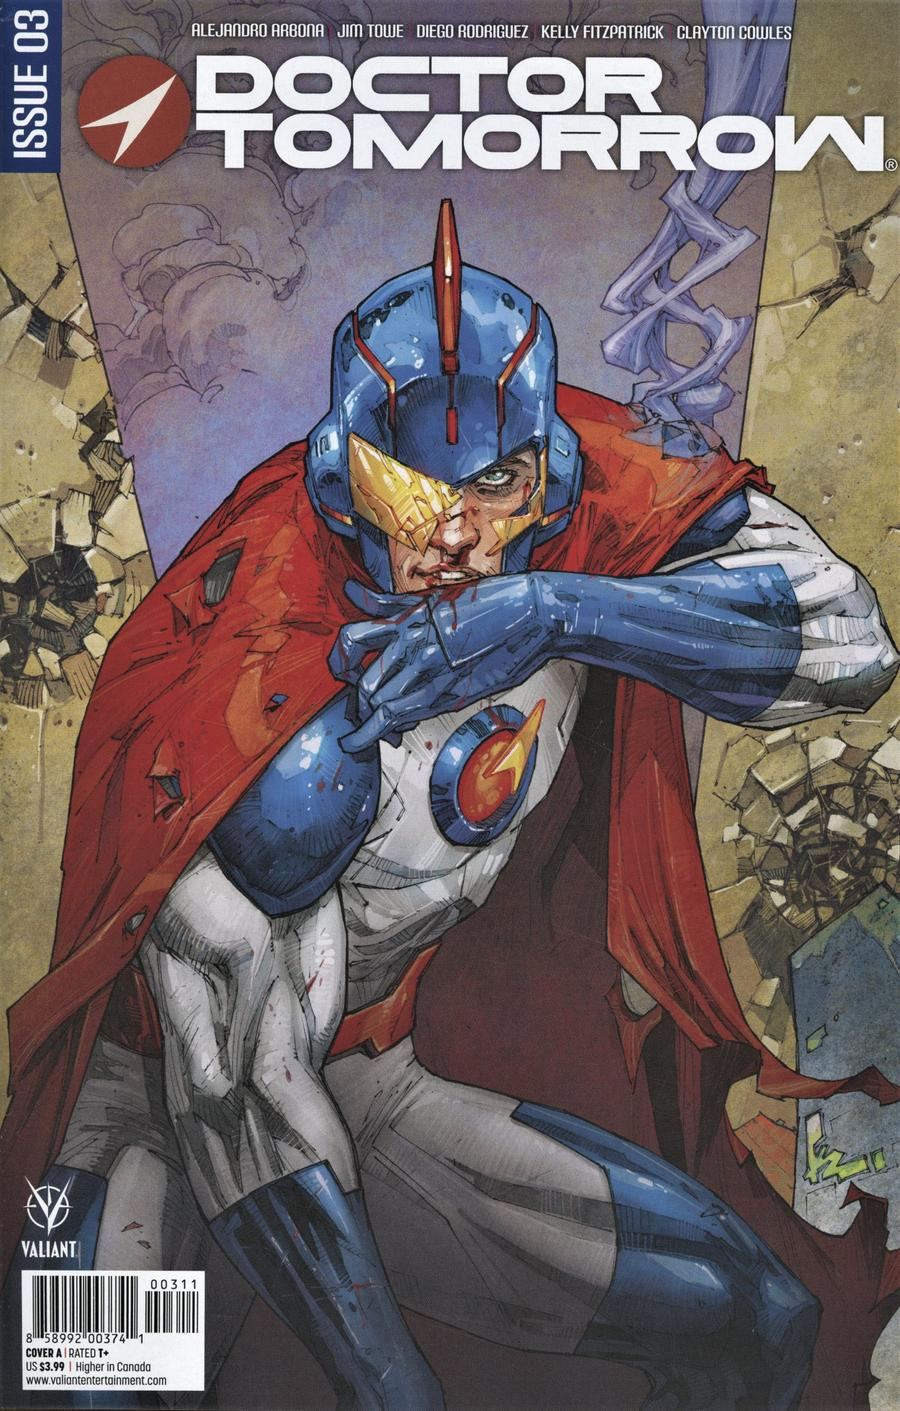 Doctor Tomorrow Vol 2 #3 Cover A Regular Kenneth Rocafort Cover